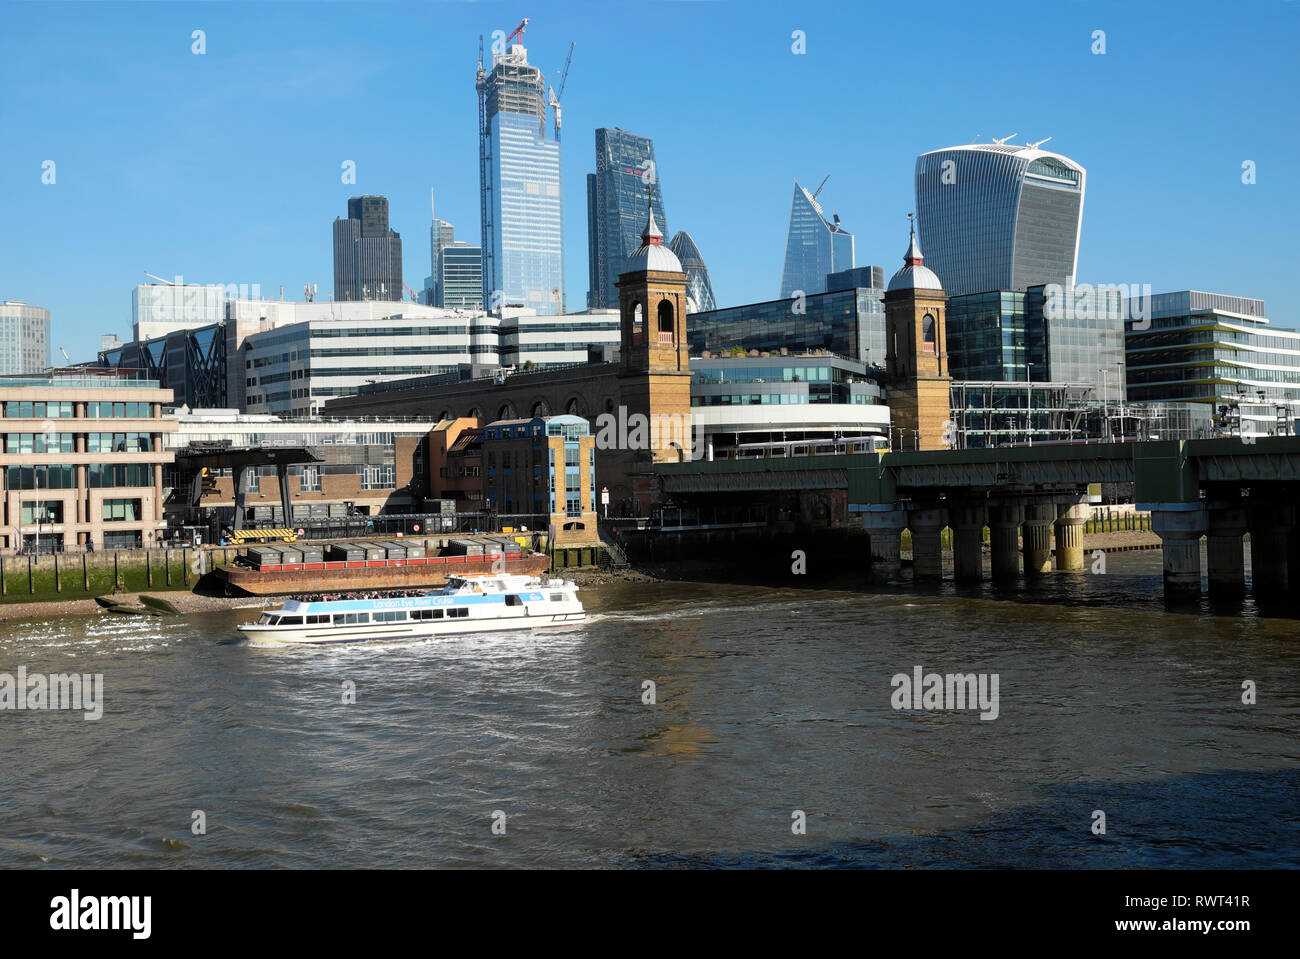 Tourist boat on the River Thames & view of Cannon Street Station & buildings in the City of London UK  KATHY DEWITT - Stock Image